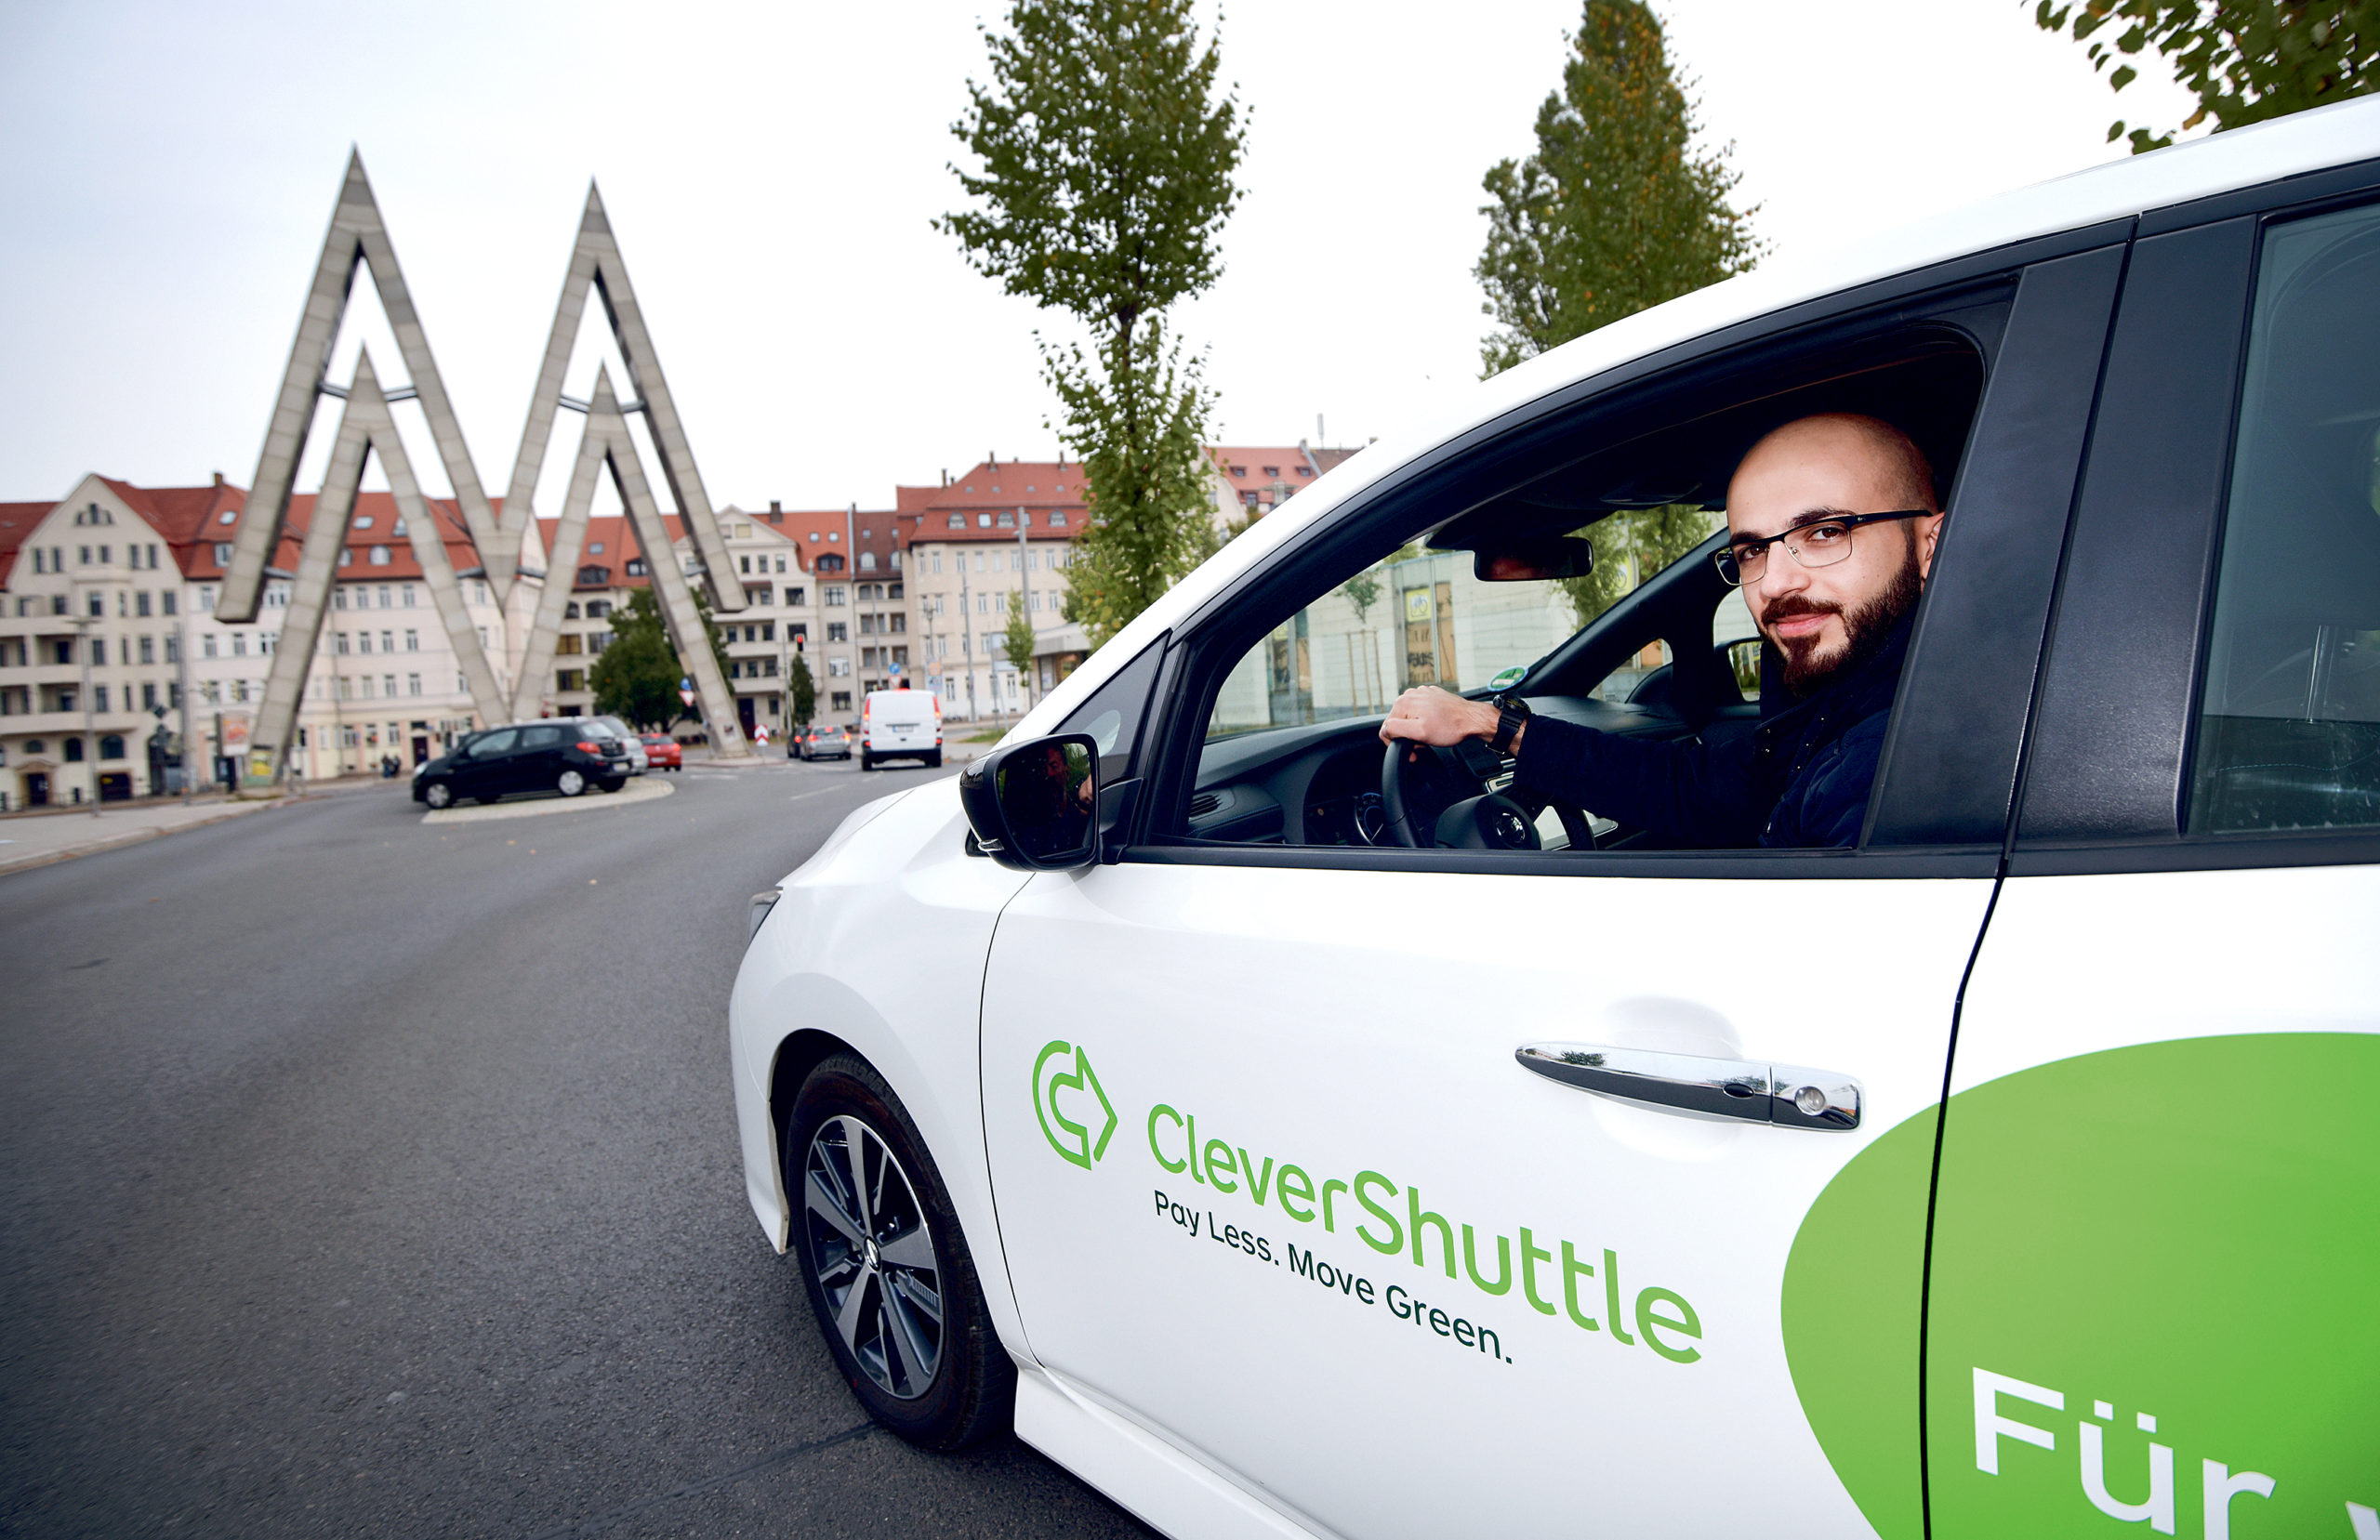 CleverShuttle Test